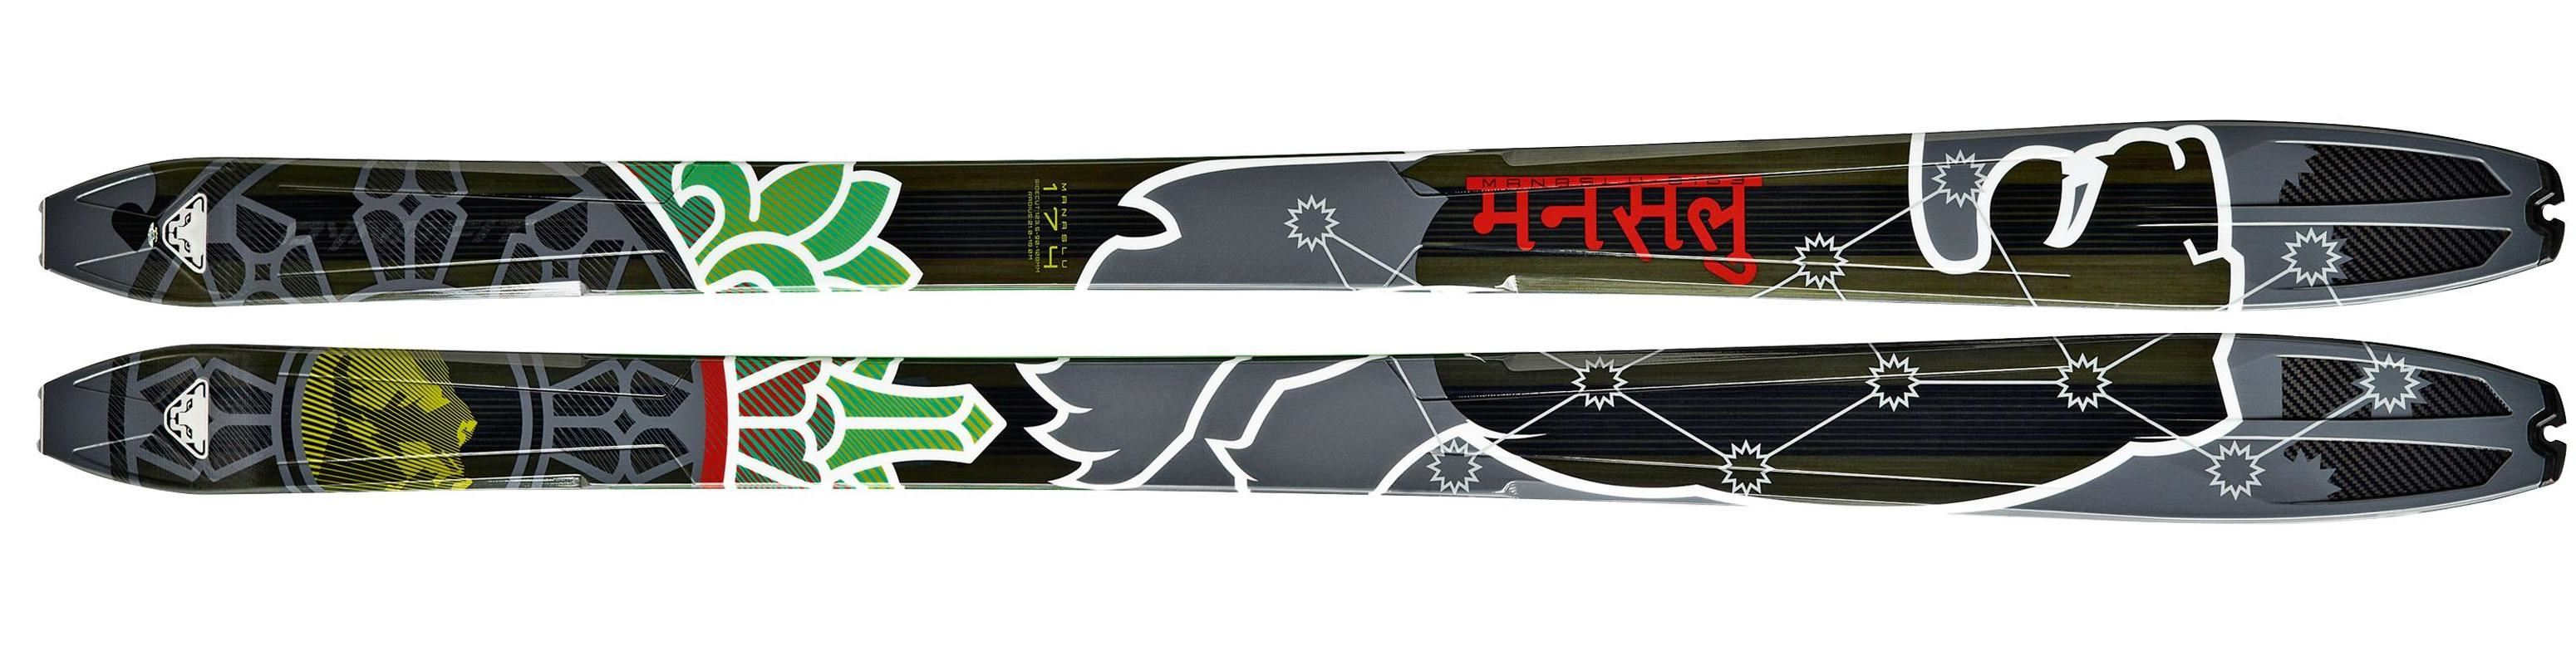 01. Touring Skis and Ski Touring Package (book just skis or skis and later add boots)